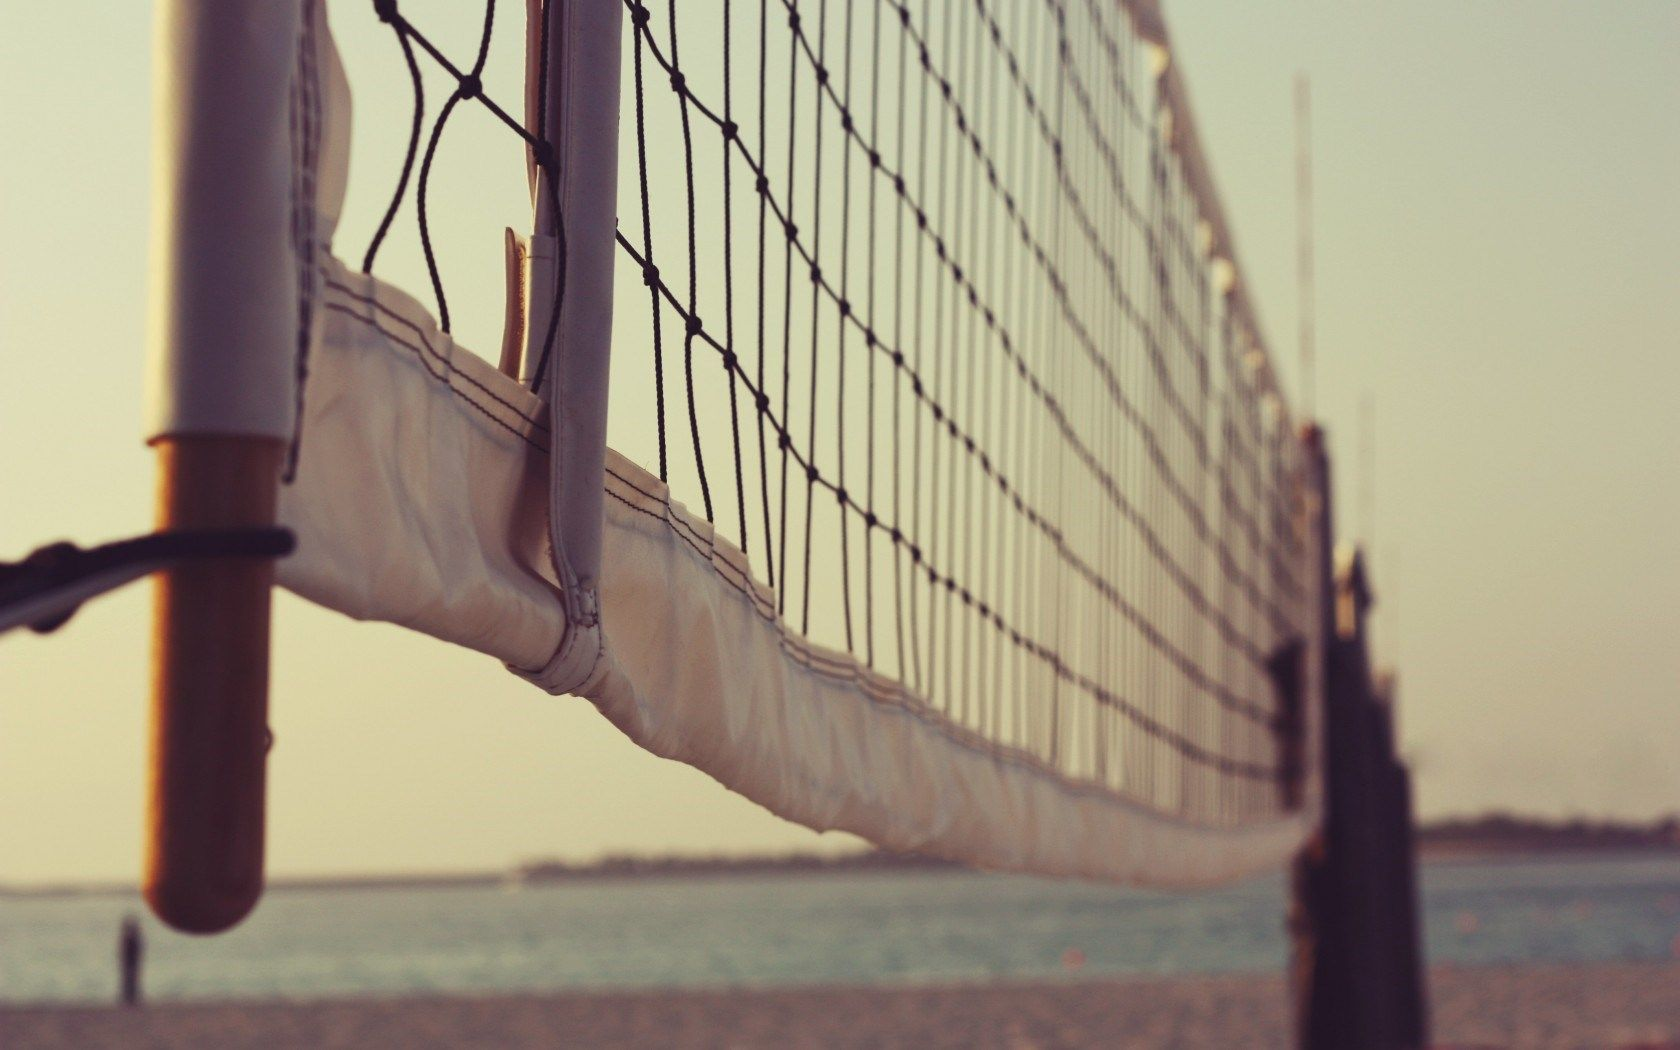 Volleyball Net Summer Beach Volleyball Wallpaper Volleyball Backgrounds Volleyball Net